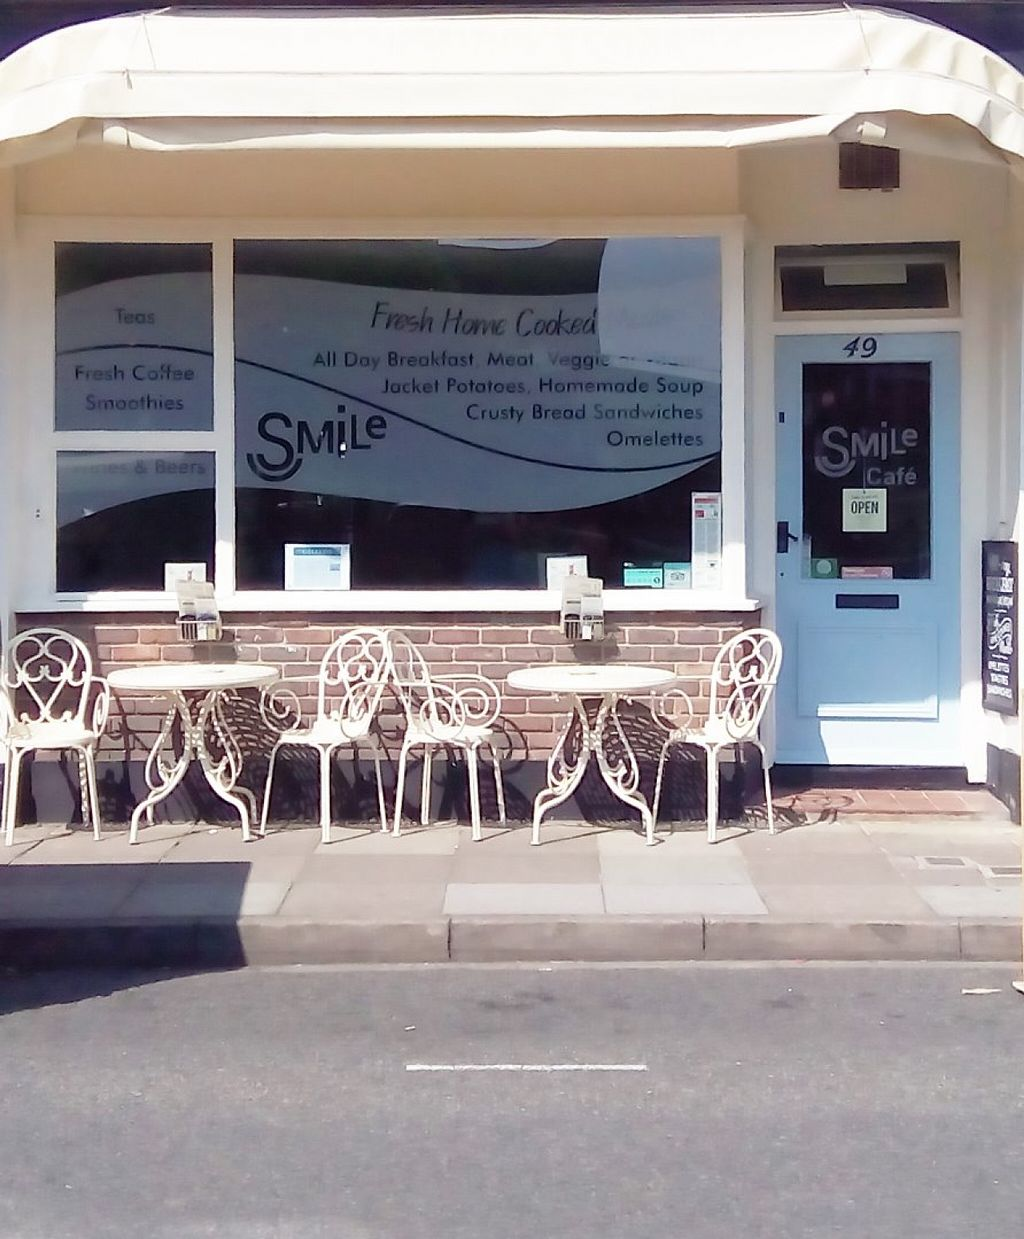 """Photo of Smile Cafe  by <a href=""""/members/profile/zcesmsk"""">zcesmsk</a> <br/>cafe <br/> May 28, 2016  - <a href='/contact/abuse/image/46493/151190'>Report</a>"""